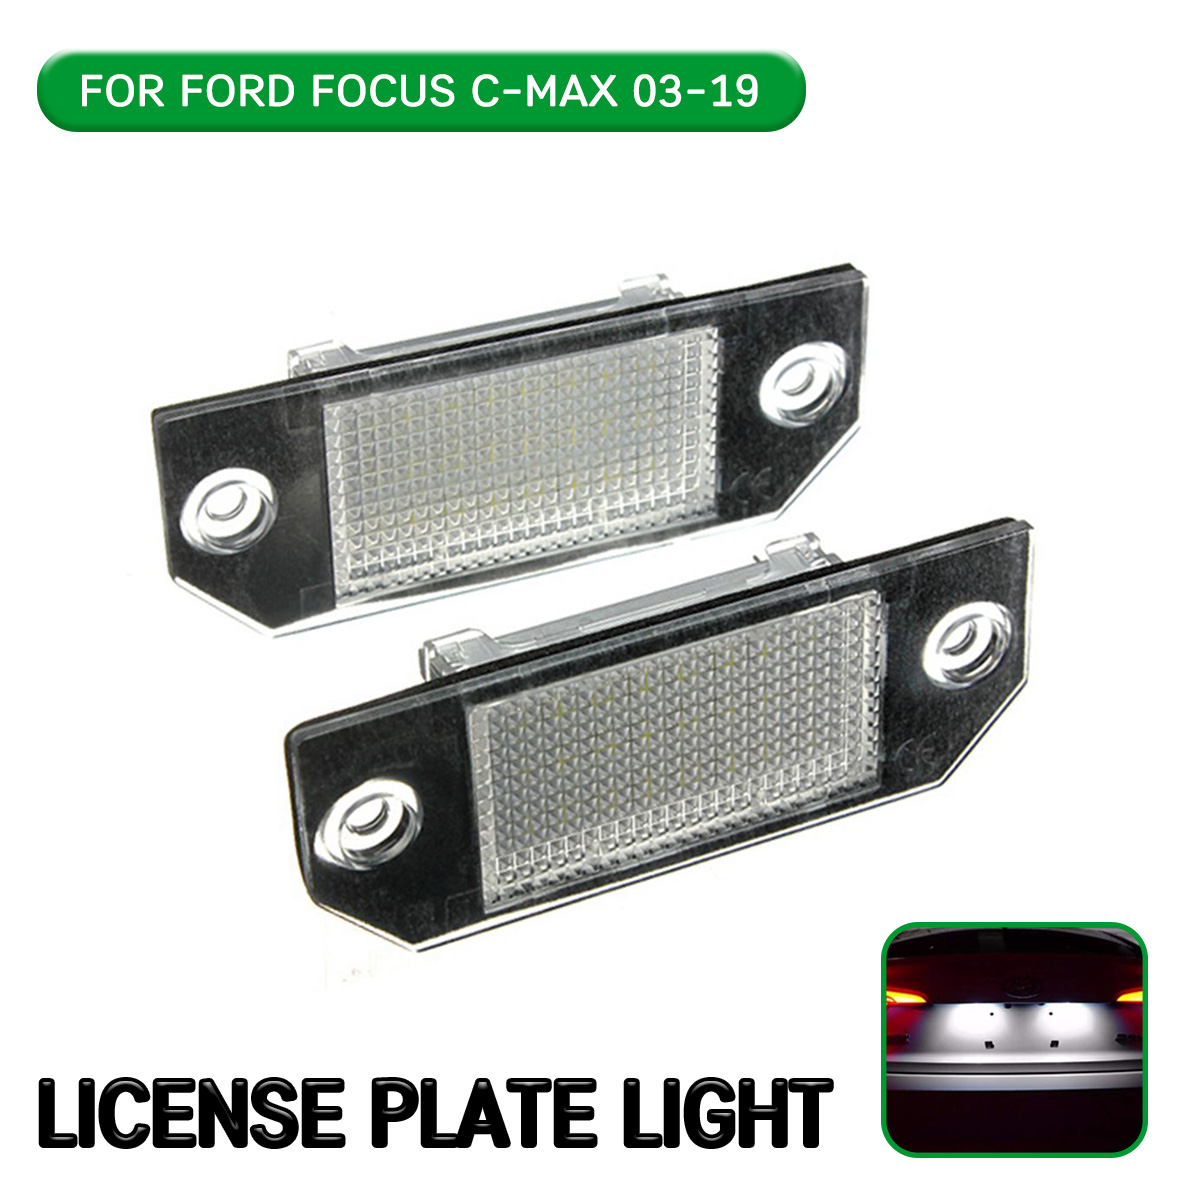 2pc <font><b>LED</b></font> License Number Plate <font><b>Light</b></font> Lamp For Ford C-MAX I 2003-2019 For Ford Focus MK2 2003-2008 image